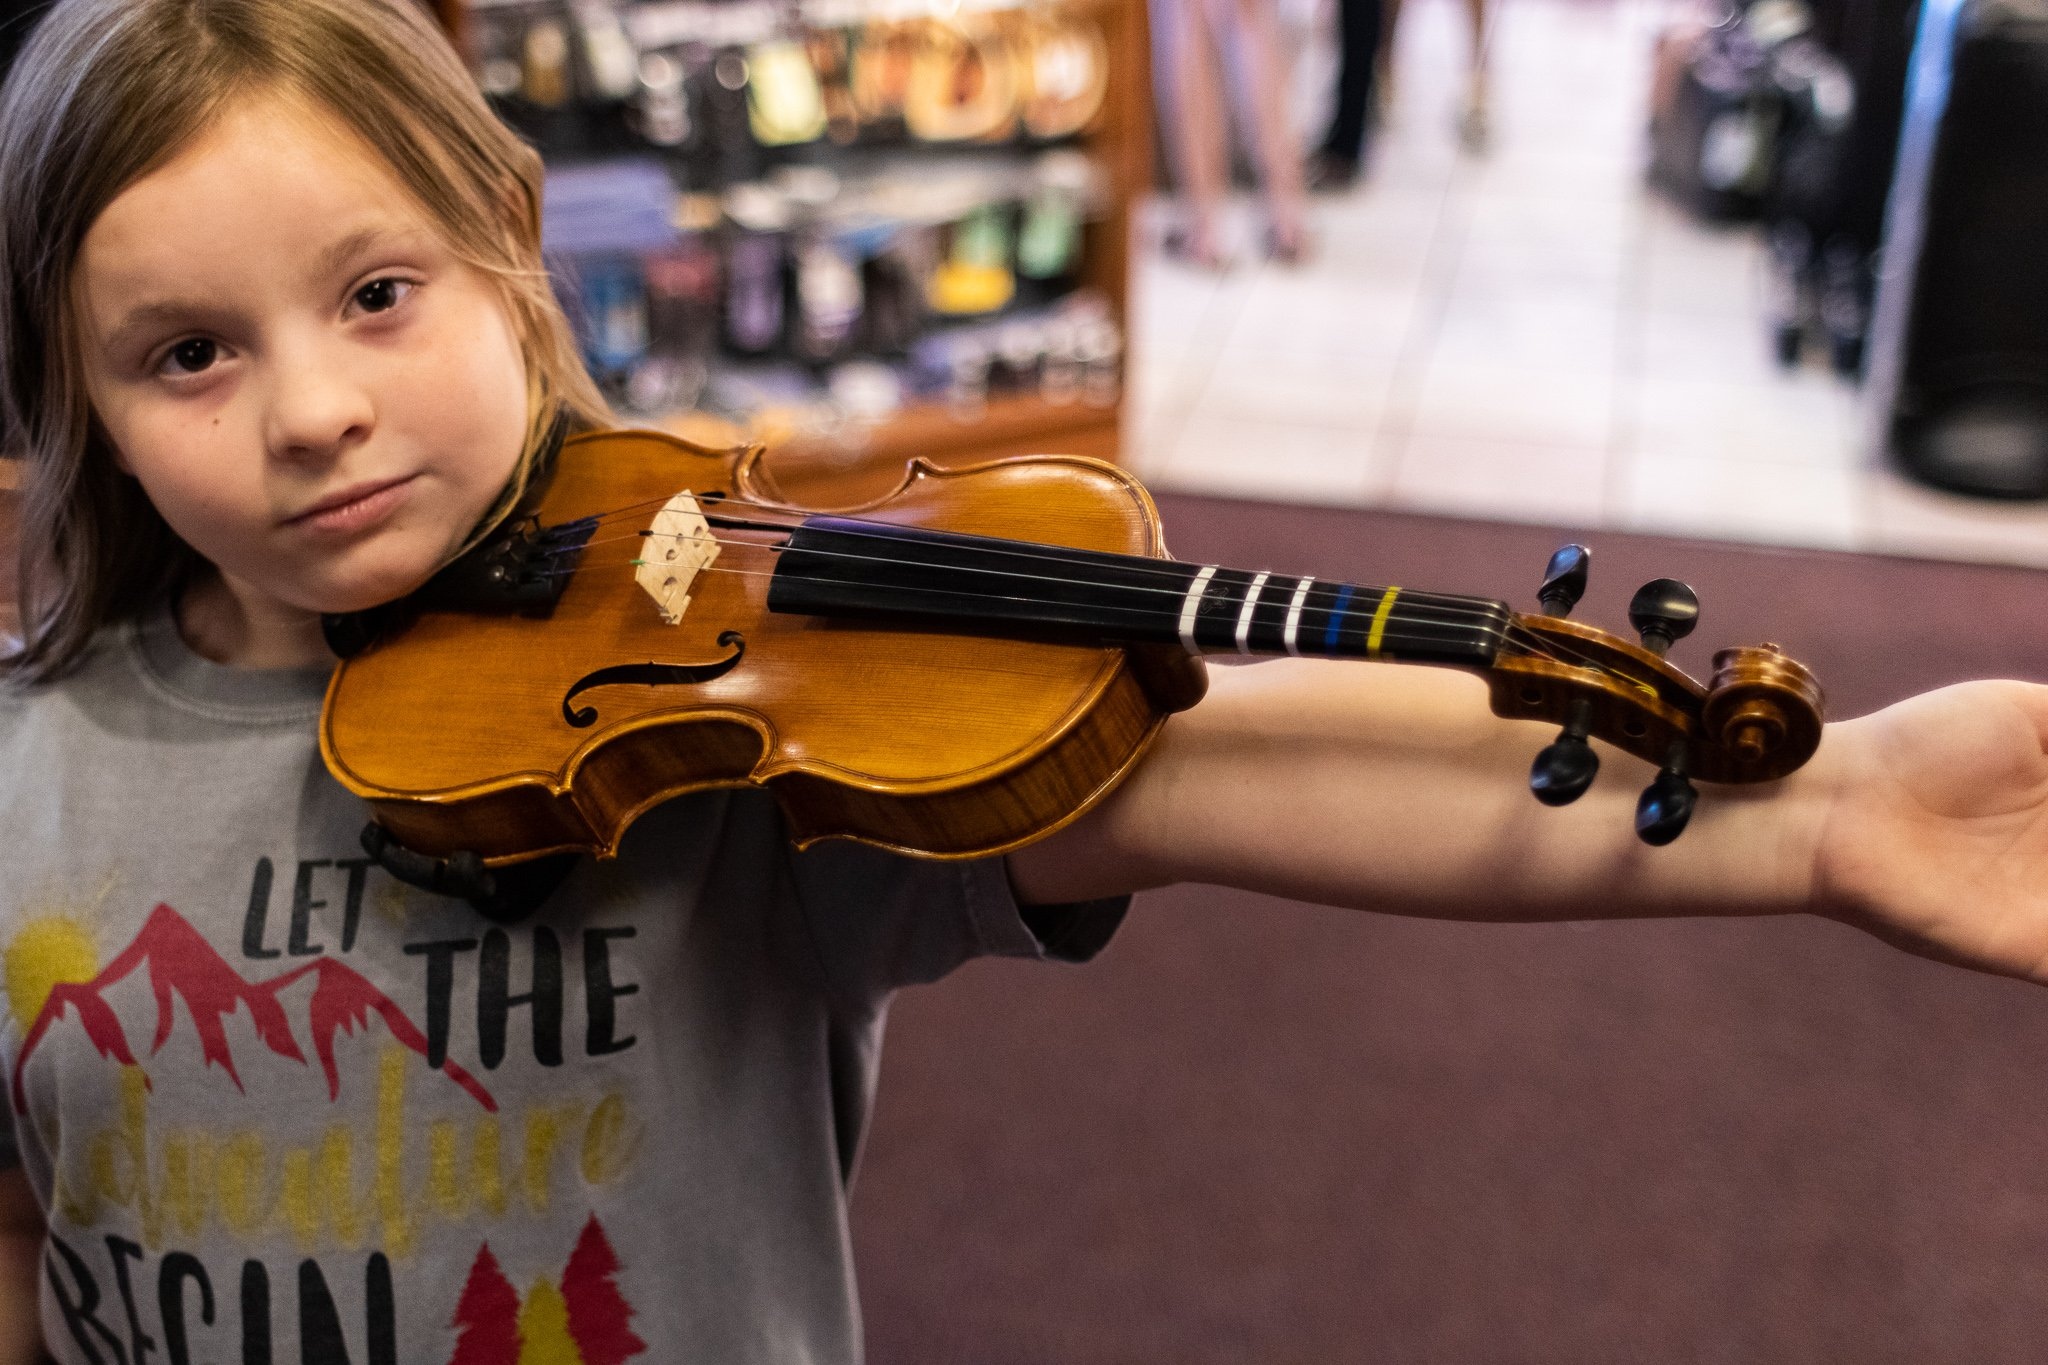 A young violinist is being checked to see if she should move up to the next size